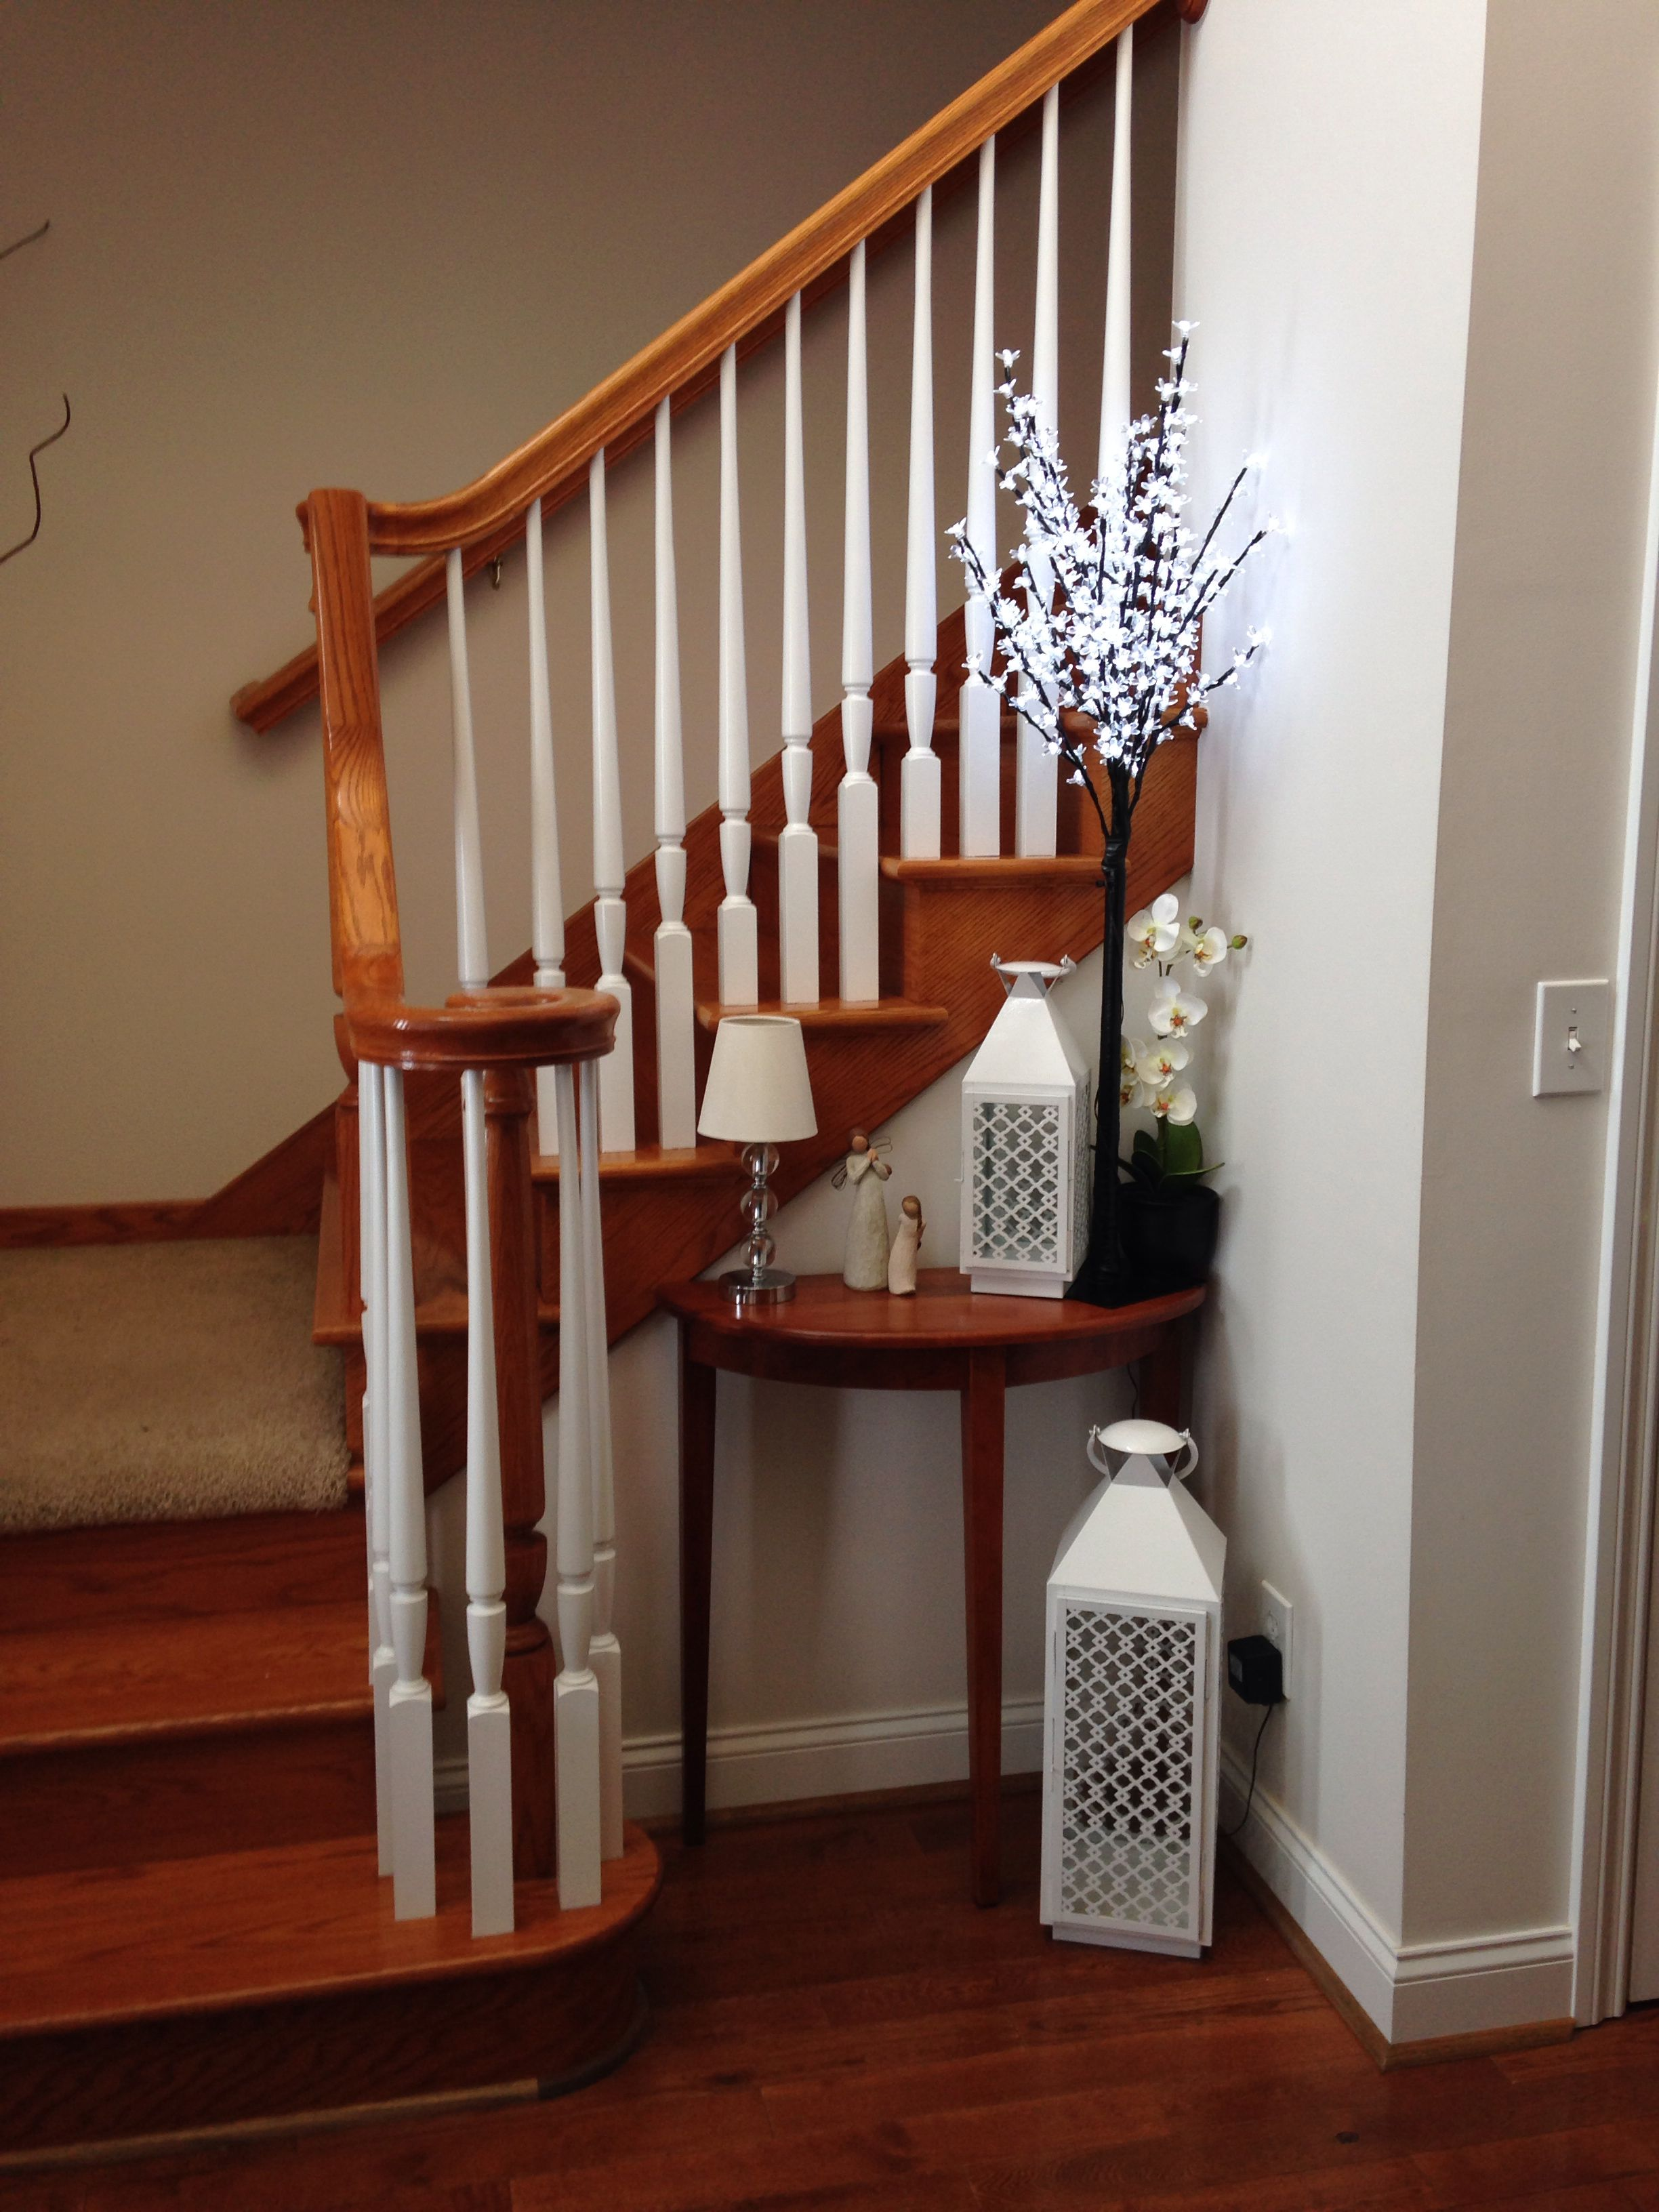 Delicieux Stairway Decorating   Entryway Decoration   Stairway Corner Decoration